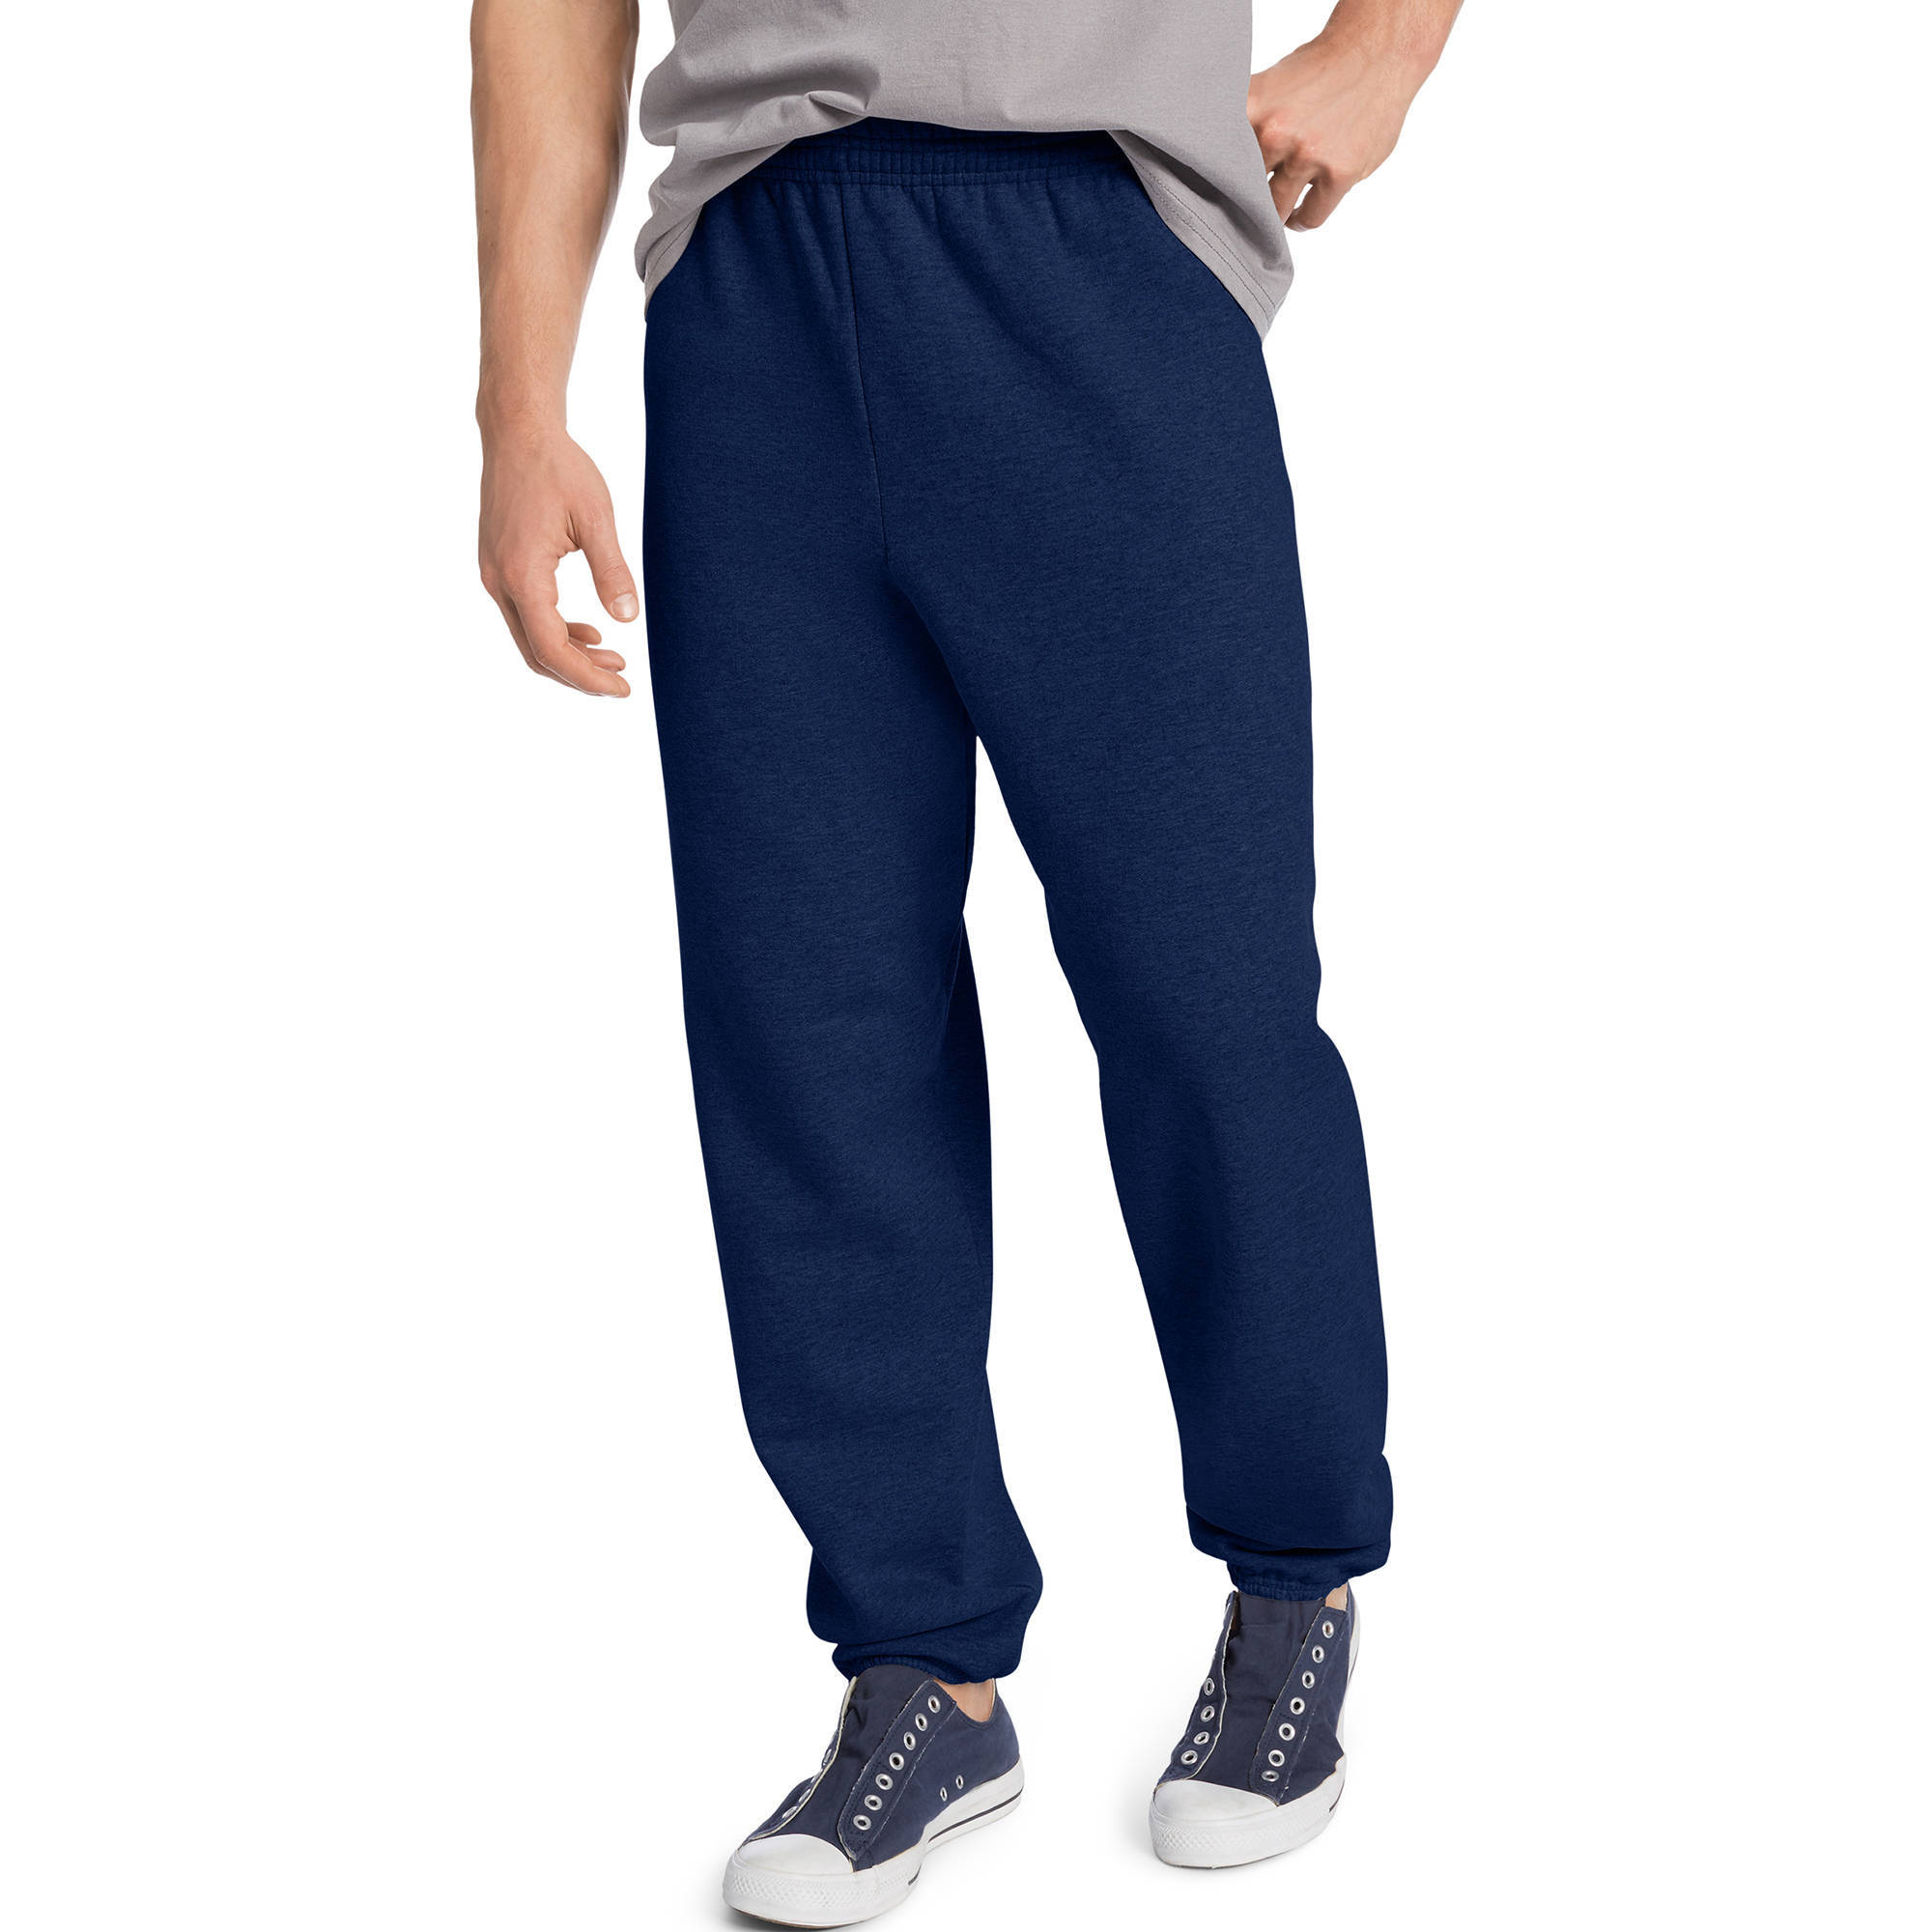 The complete Sweat Pants buying guide: